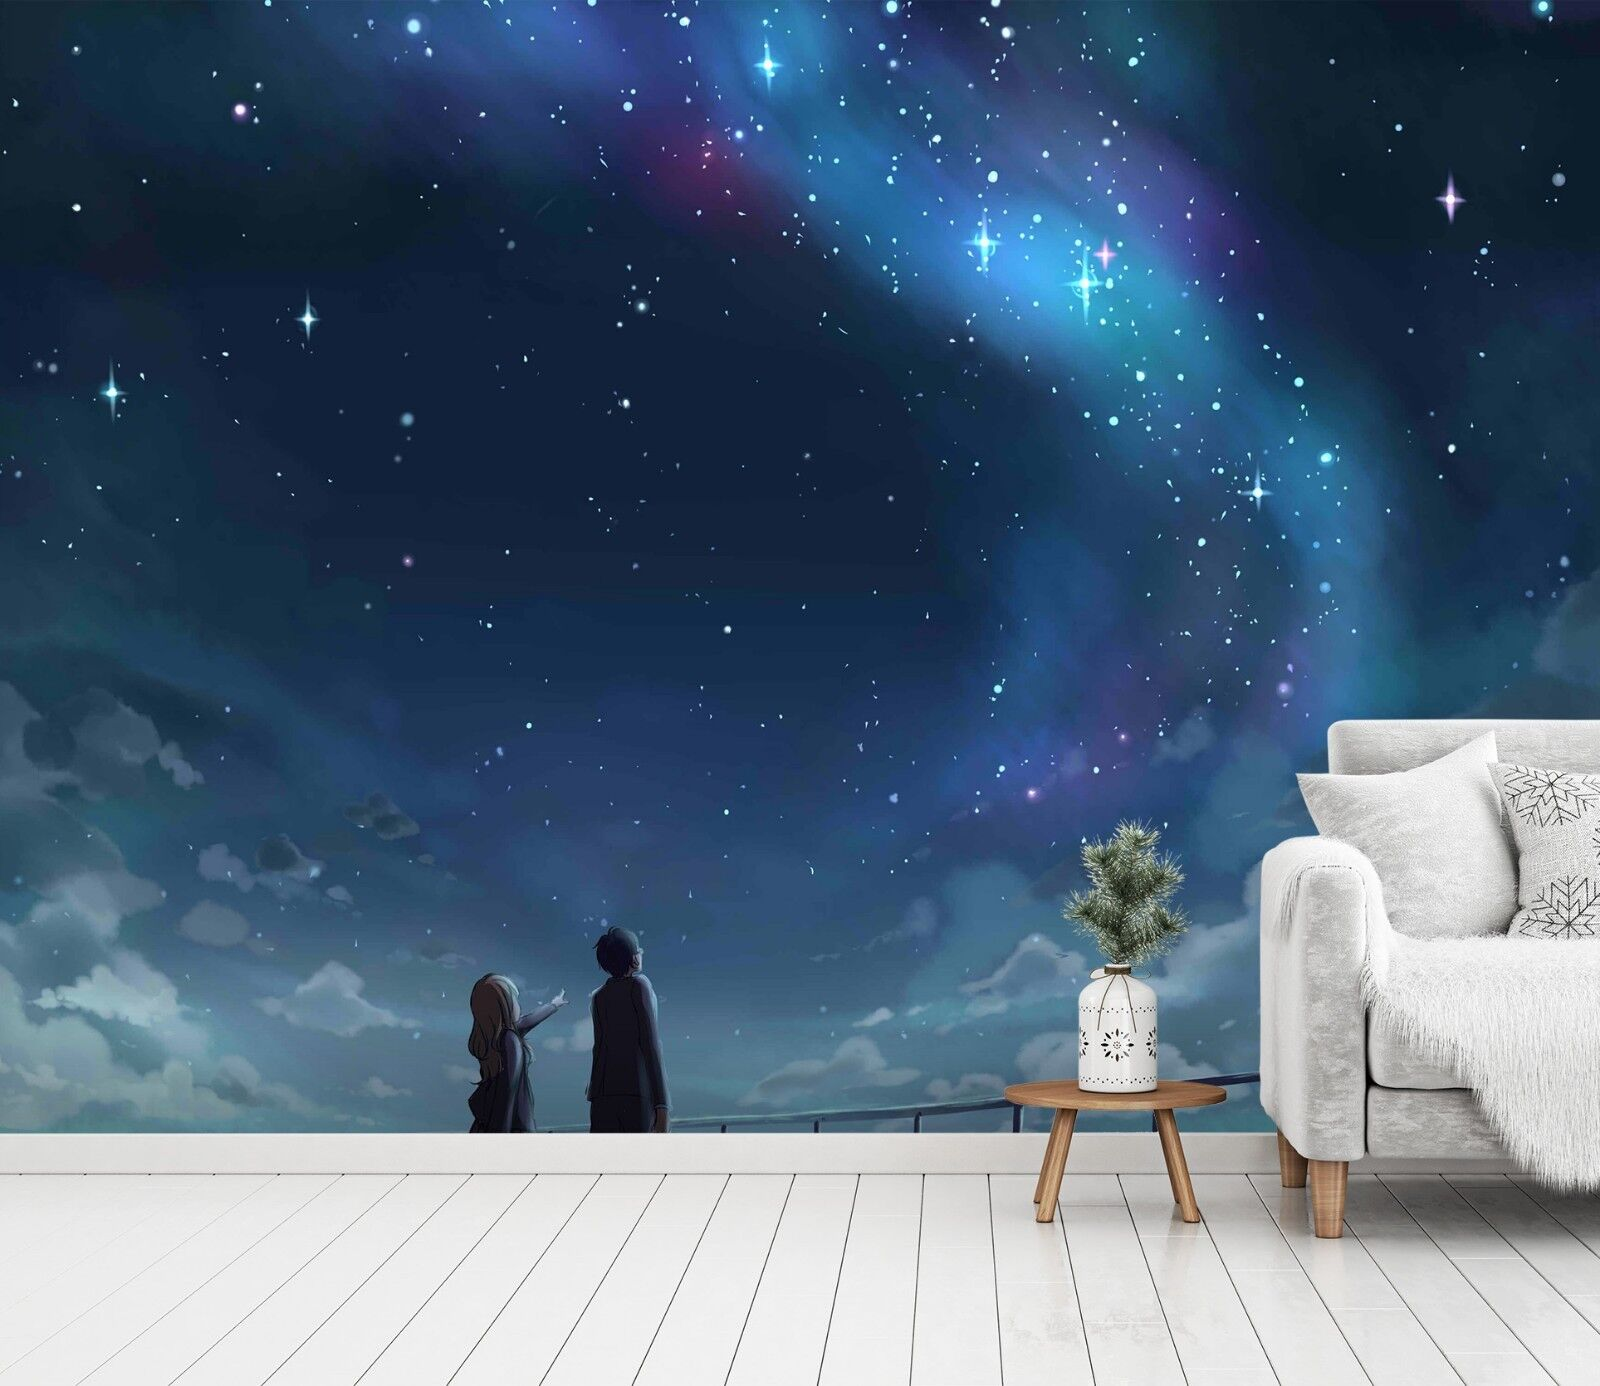 3D Starry Sky Romance 5 Wall Paper Wall Print Decal Wall Deco Indoor Wall Murals